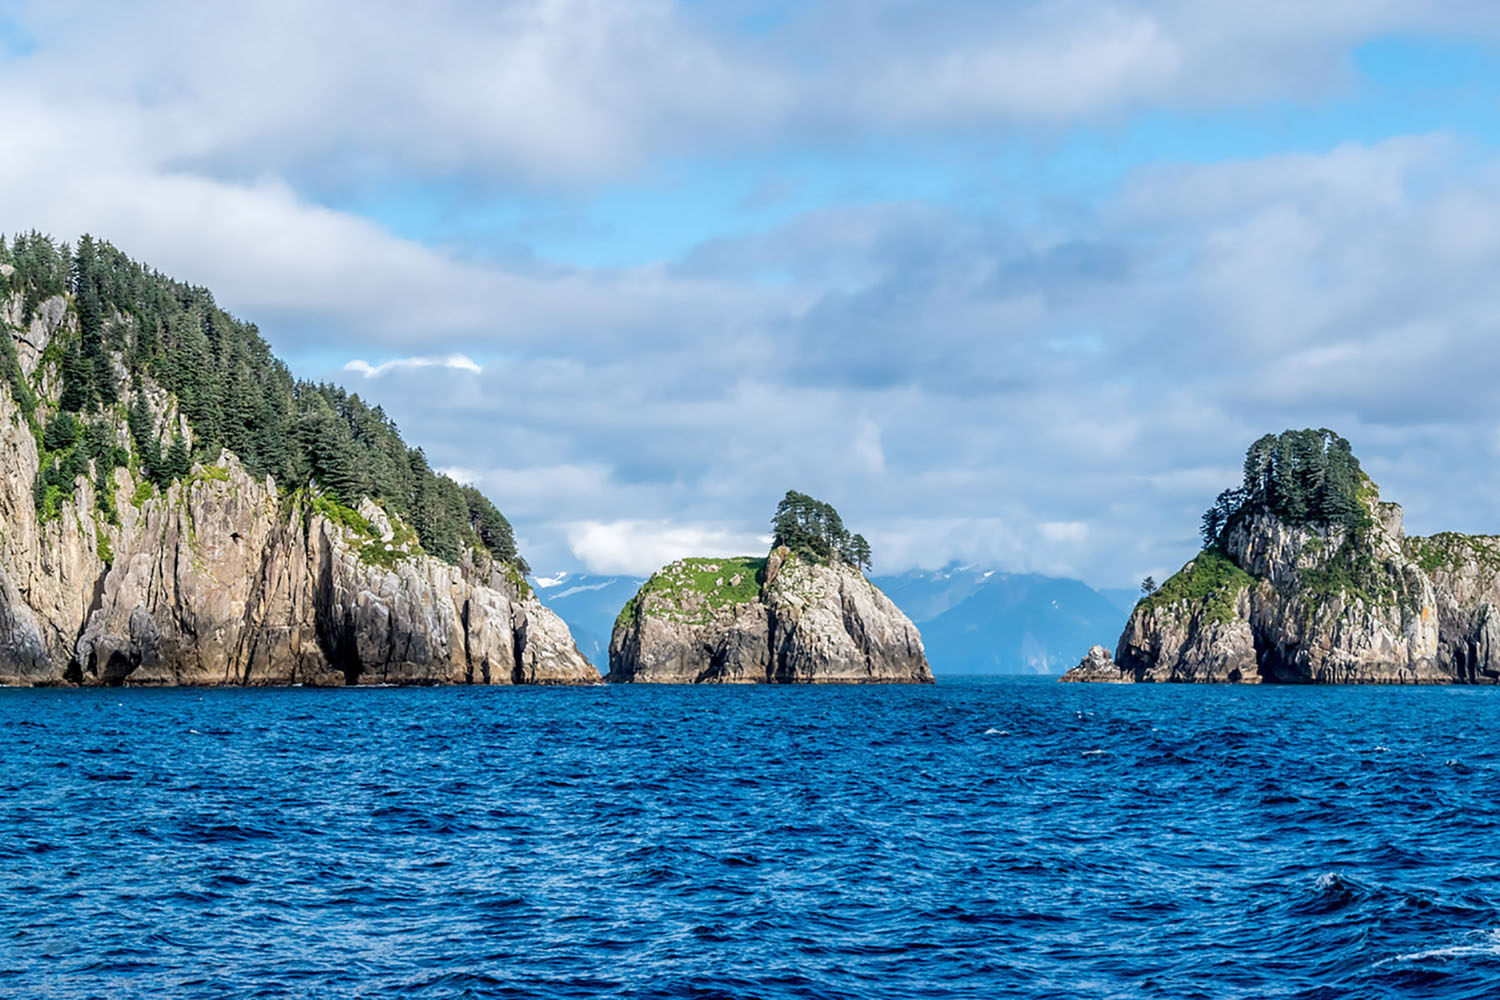 Islands in Resurrection Bay, Alaska